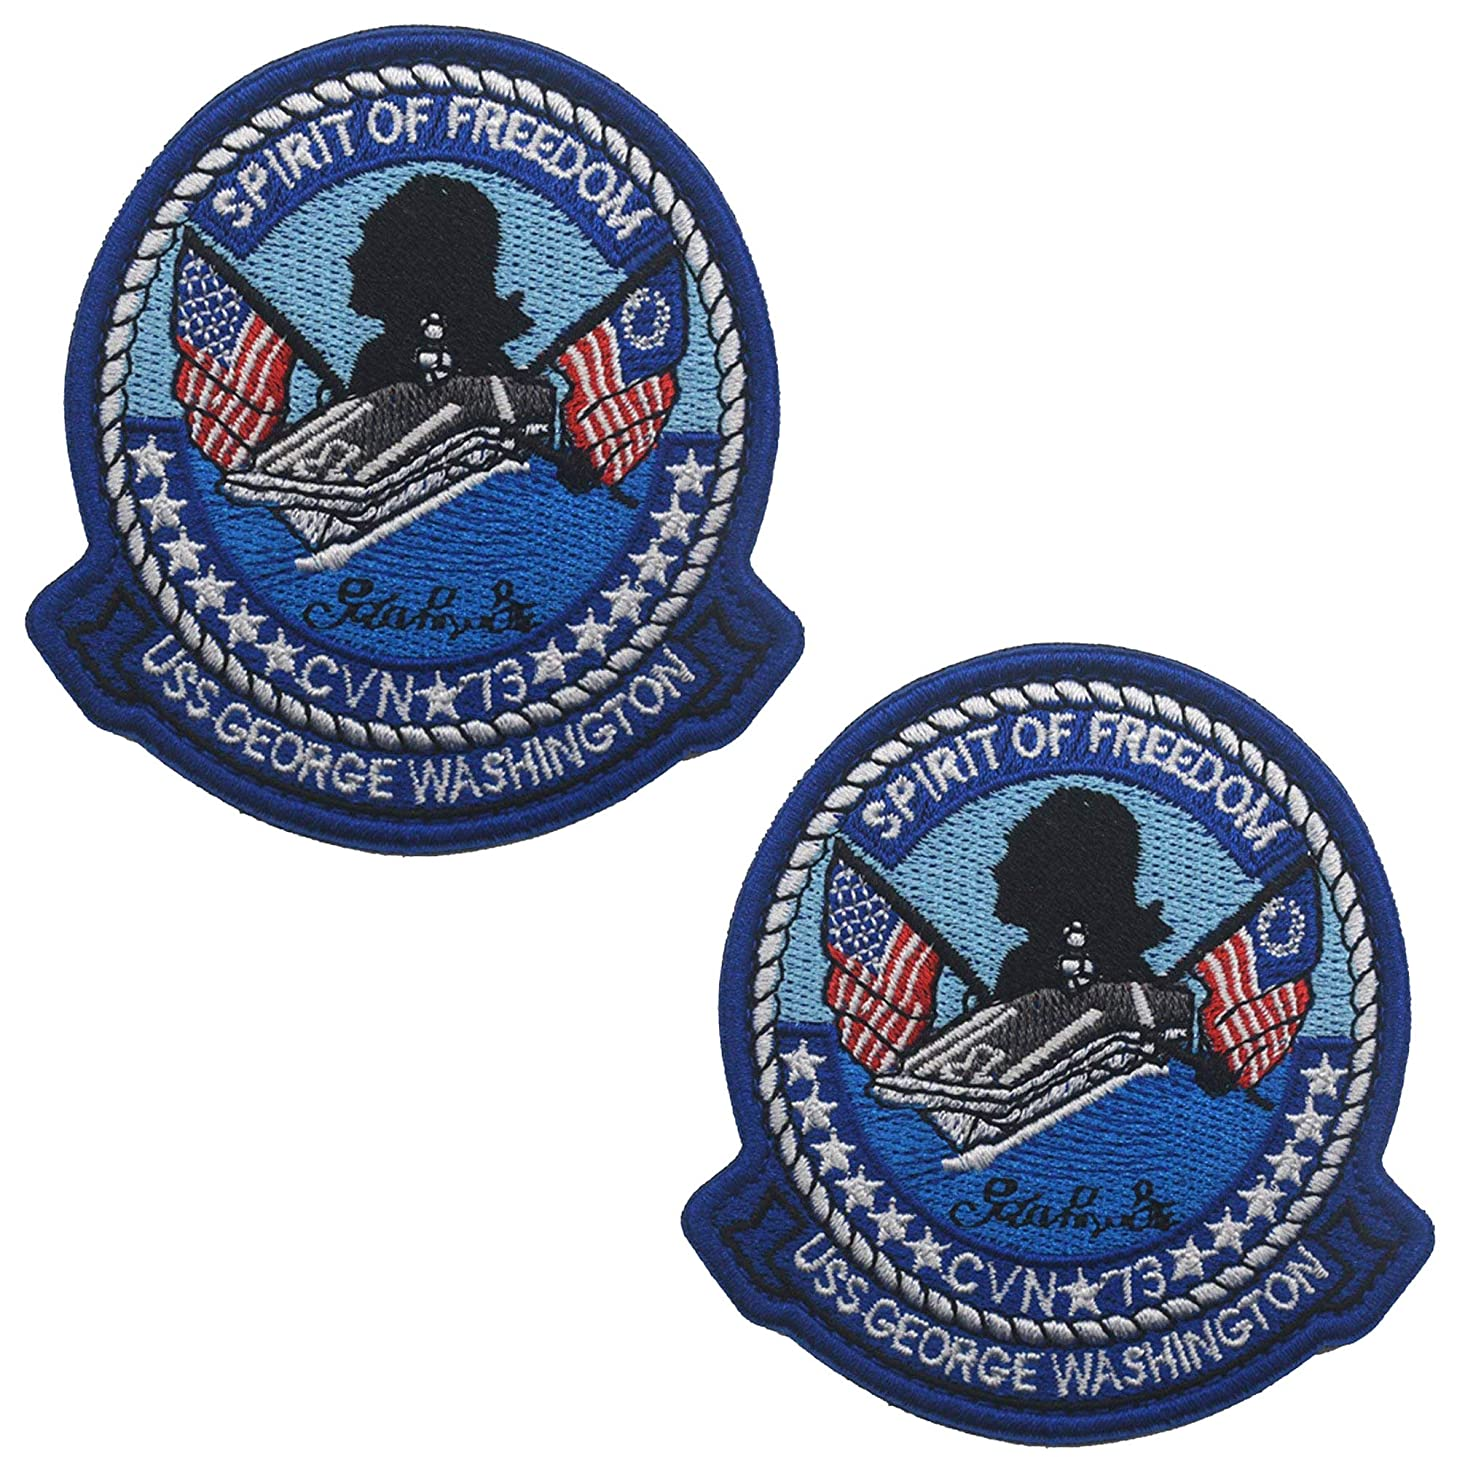 USS George Washington - Spirit of Freedom - CVN 73 Embroidered Patch Applique Badge with Hook and Loop Backing 2PCS